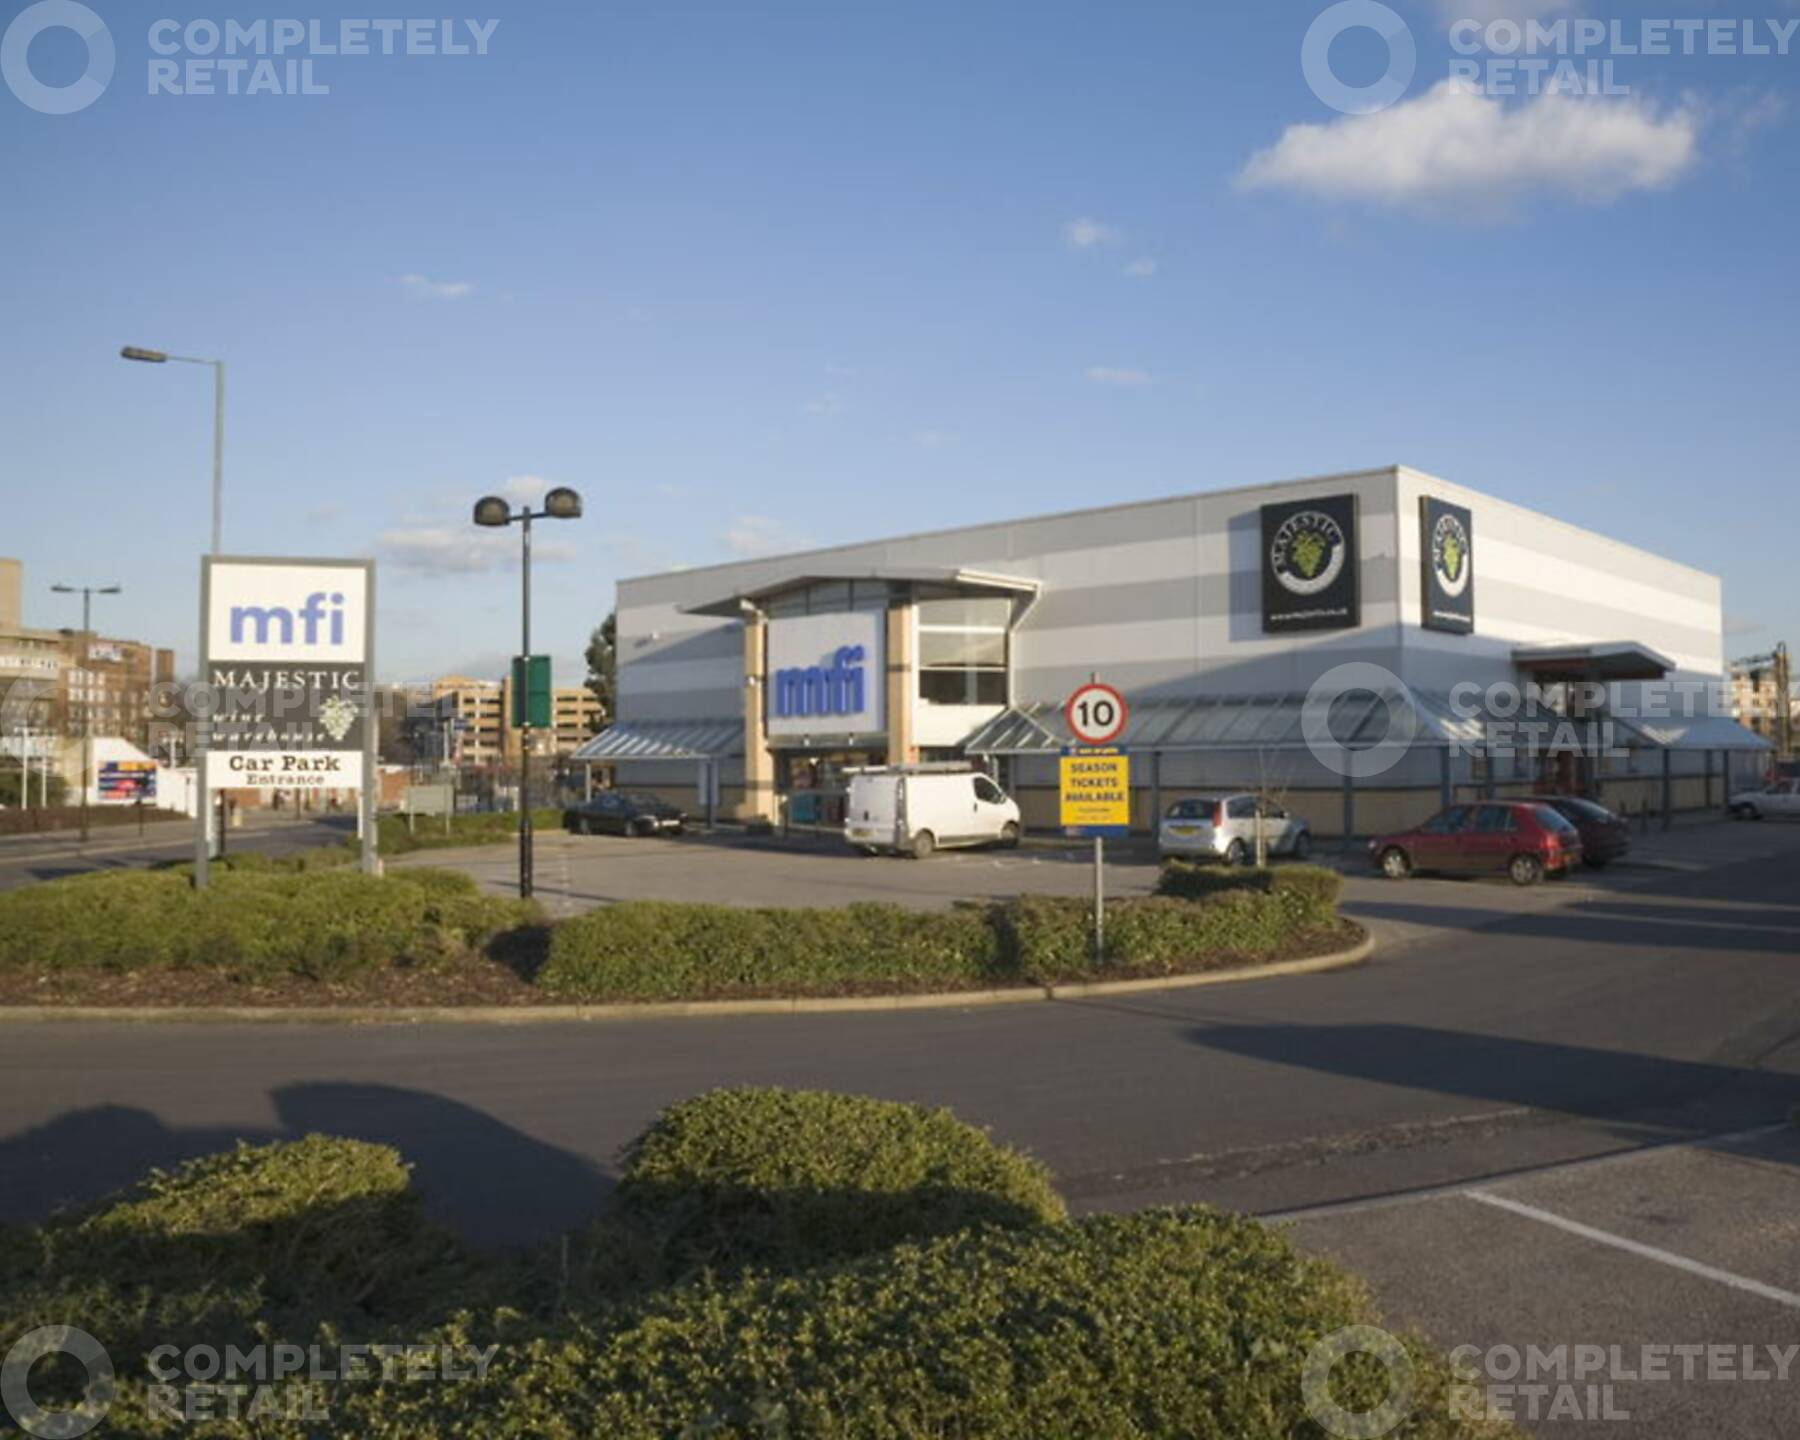 Mountbatten Retail Park